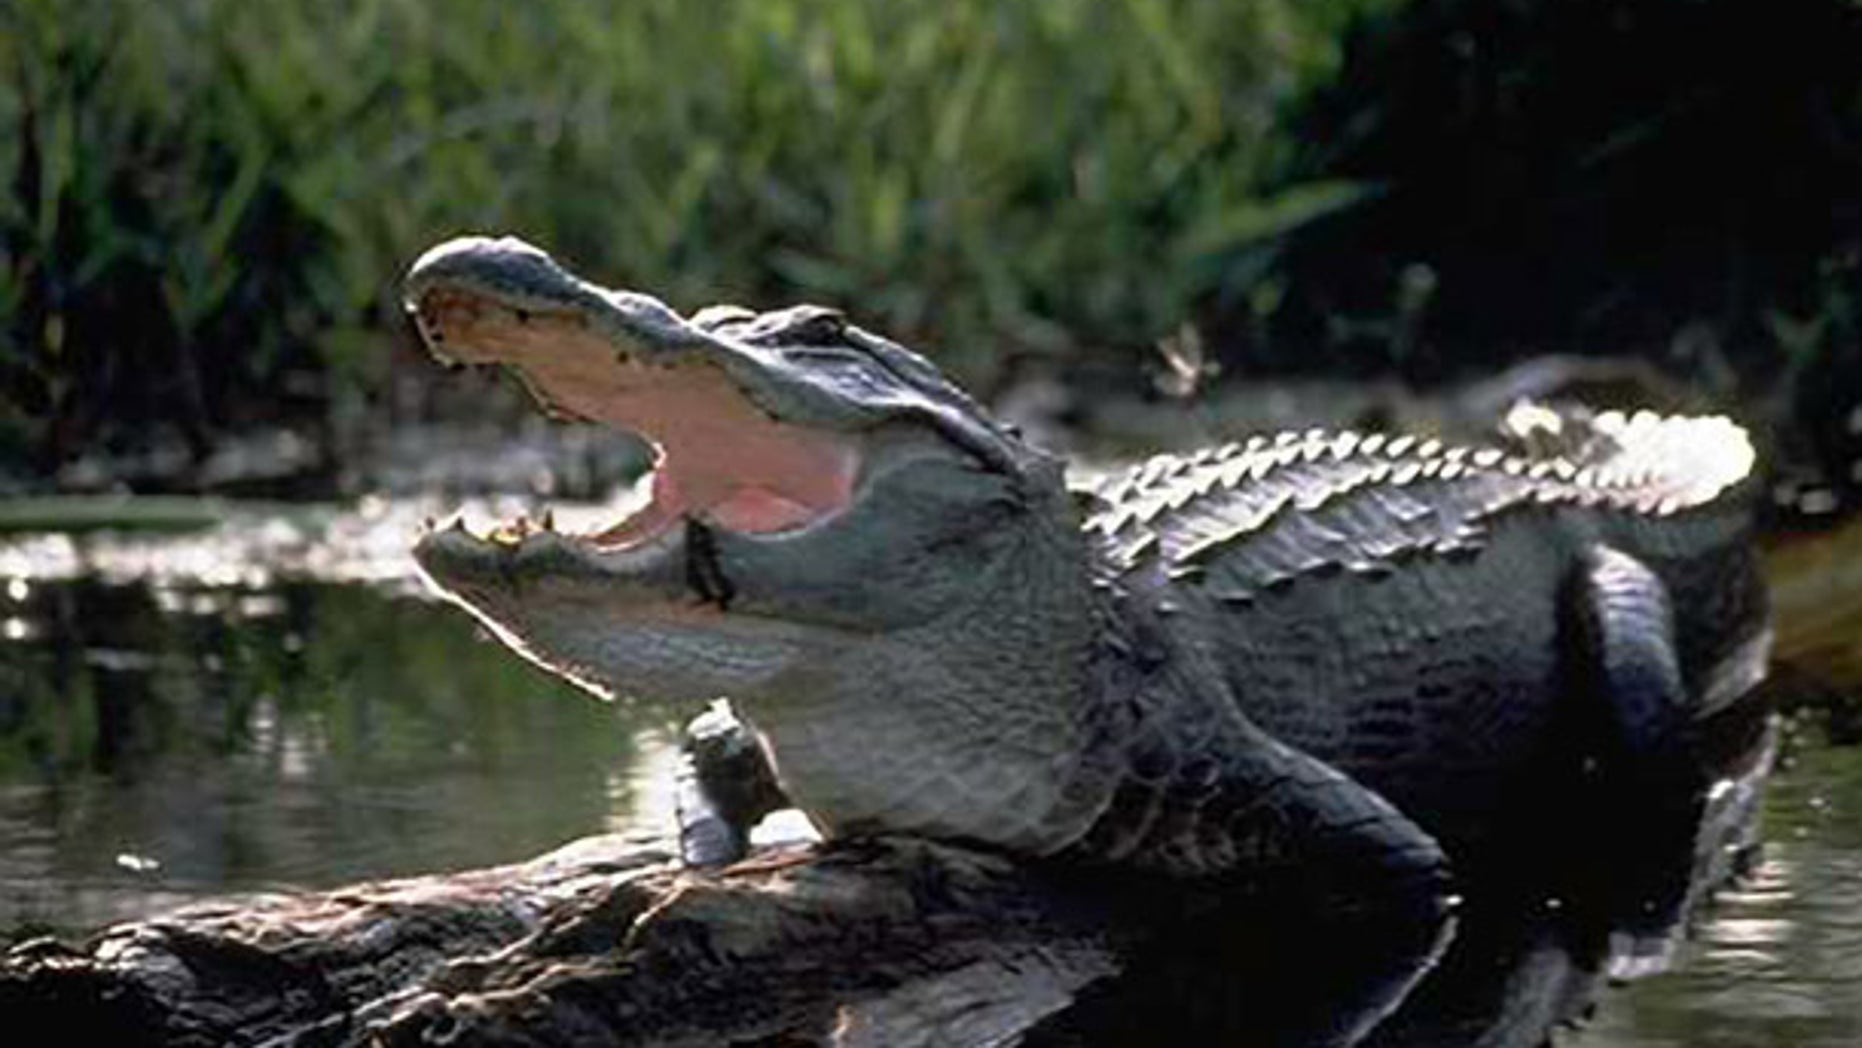 Georgia S Top Court Says 83 Year Old Alligator Victim Should Ve